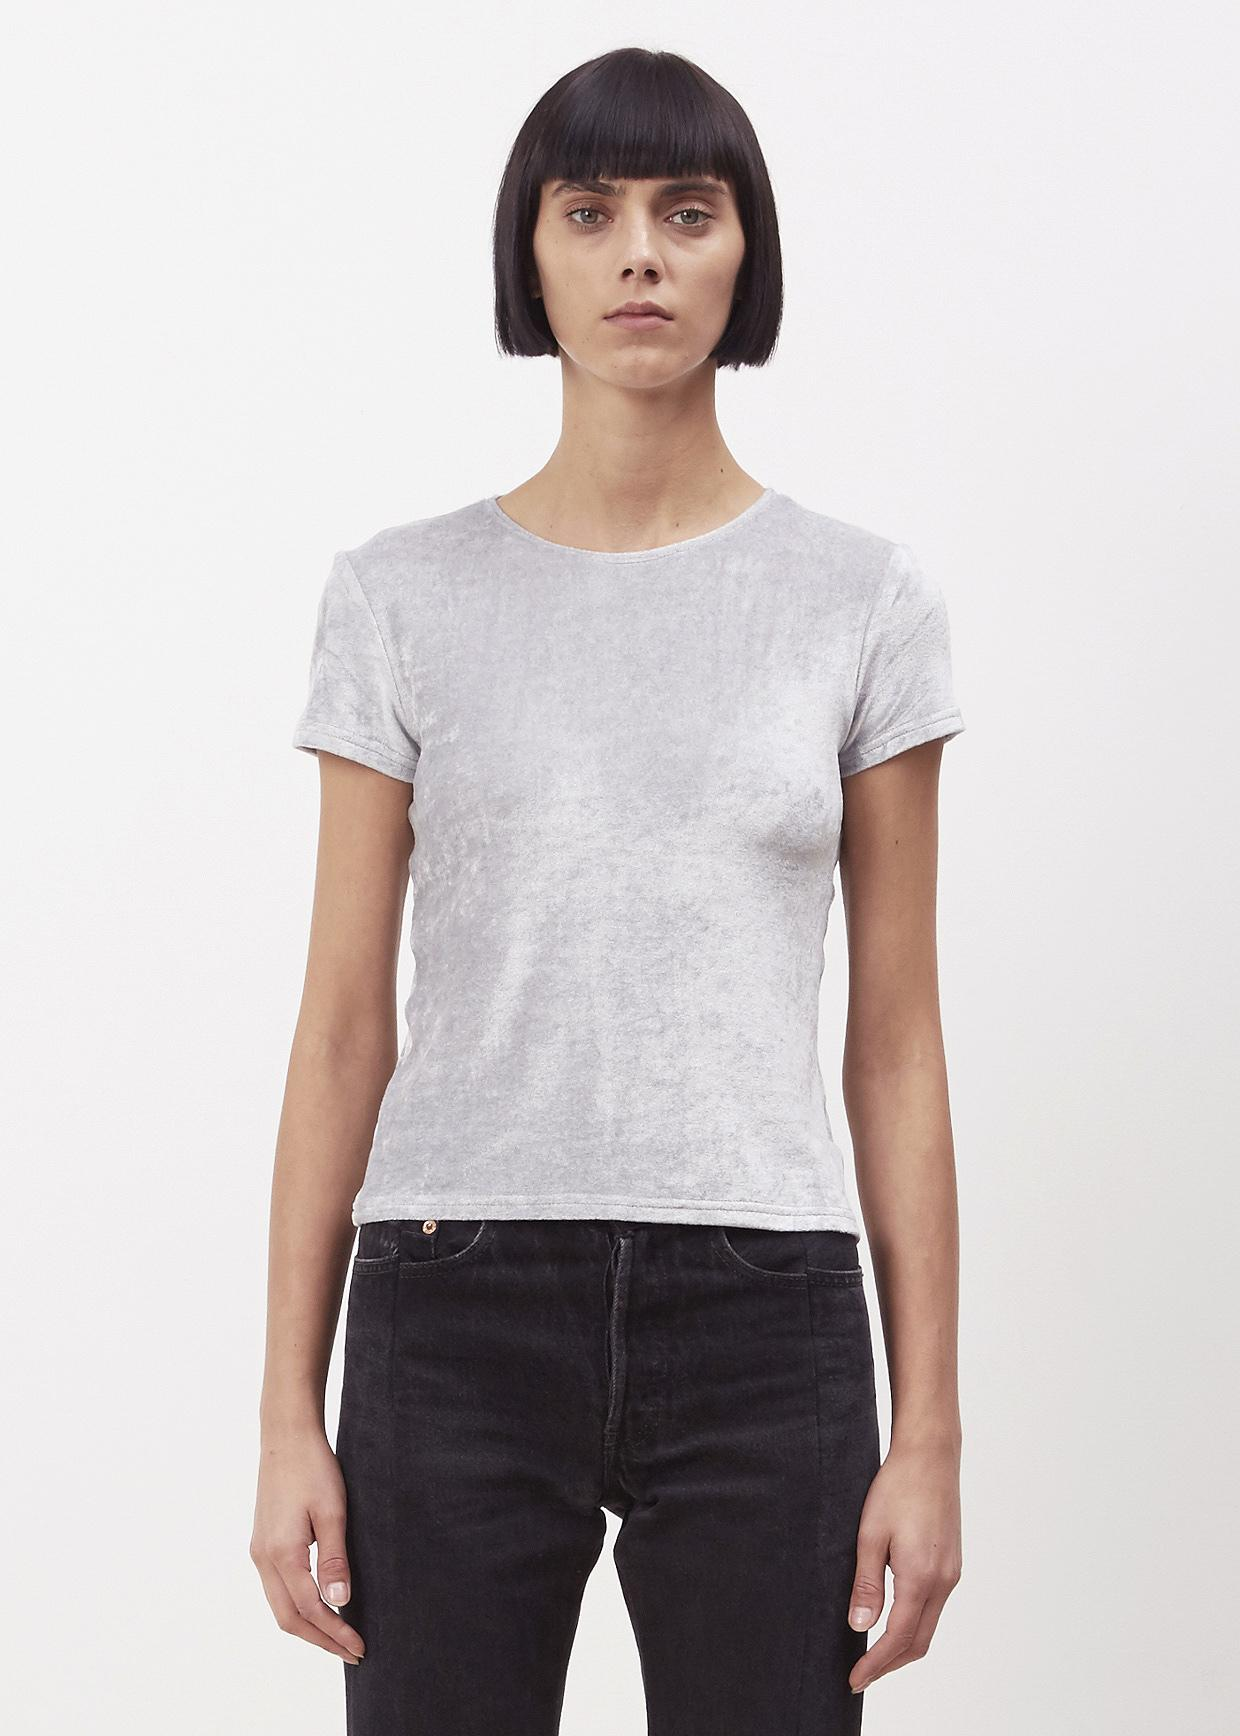 Baserange silver sahar tee in metallic lyst for Silver jeans t shirts